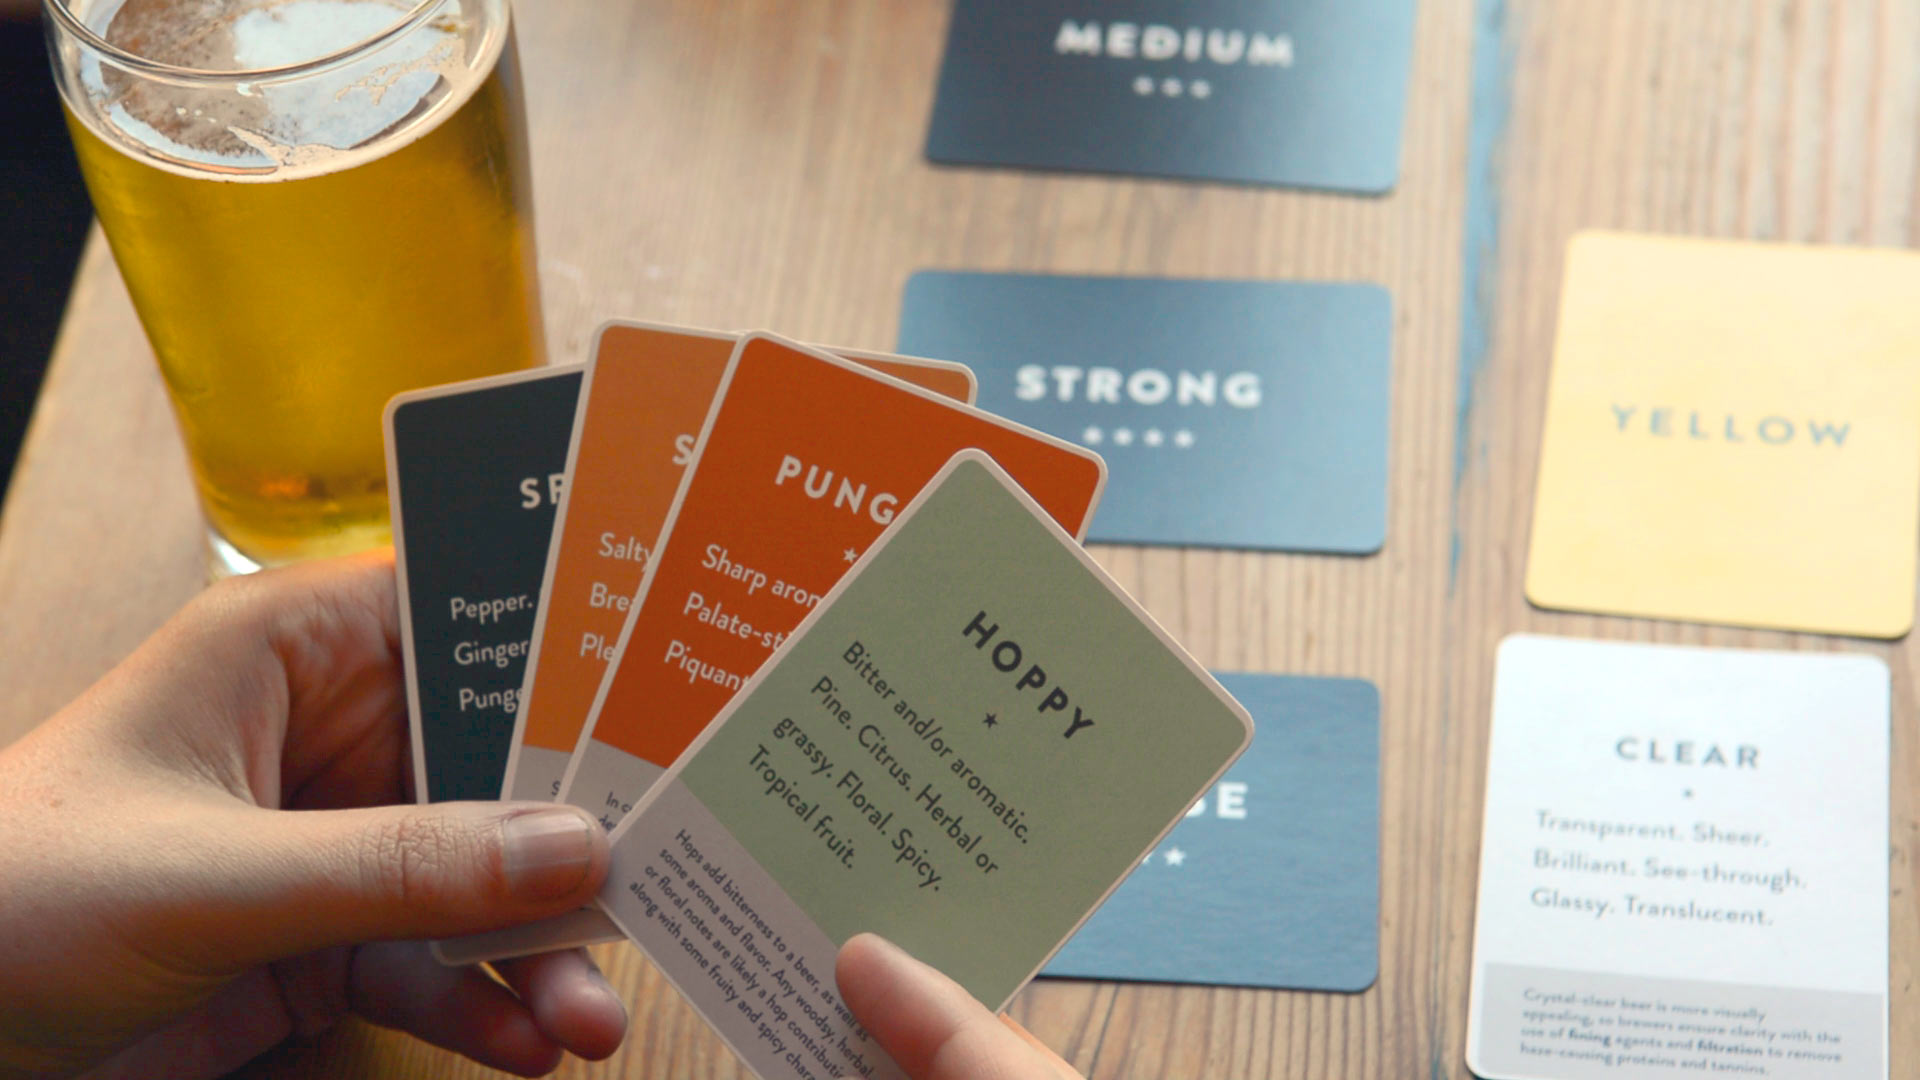 Hand holding Palate Deck Cards